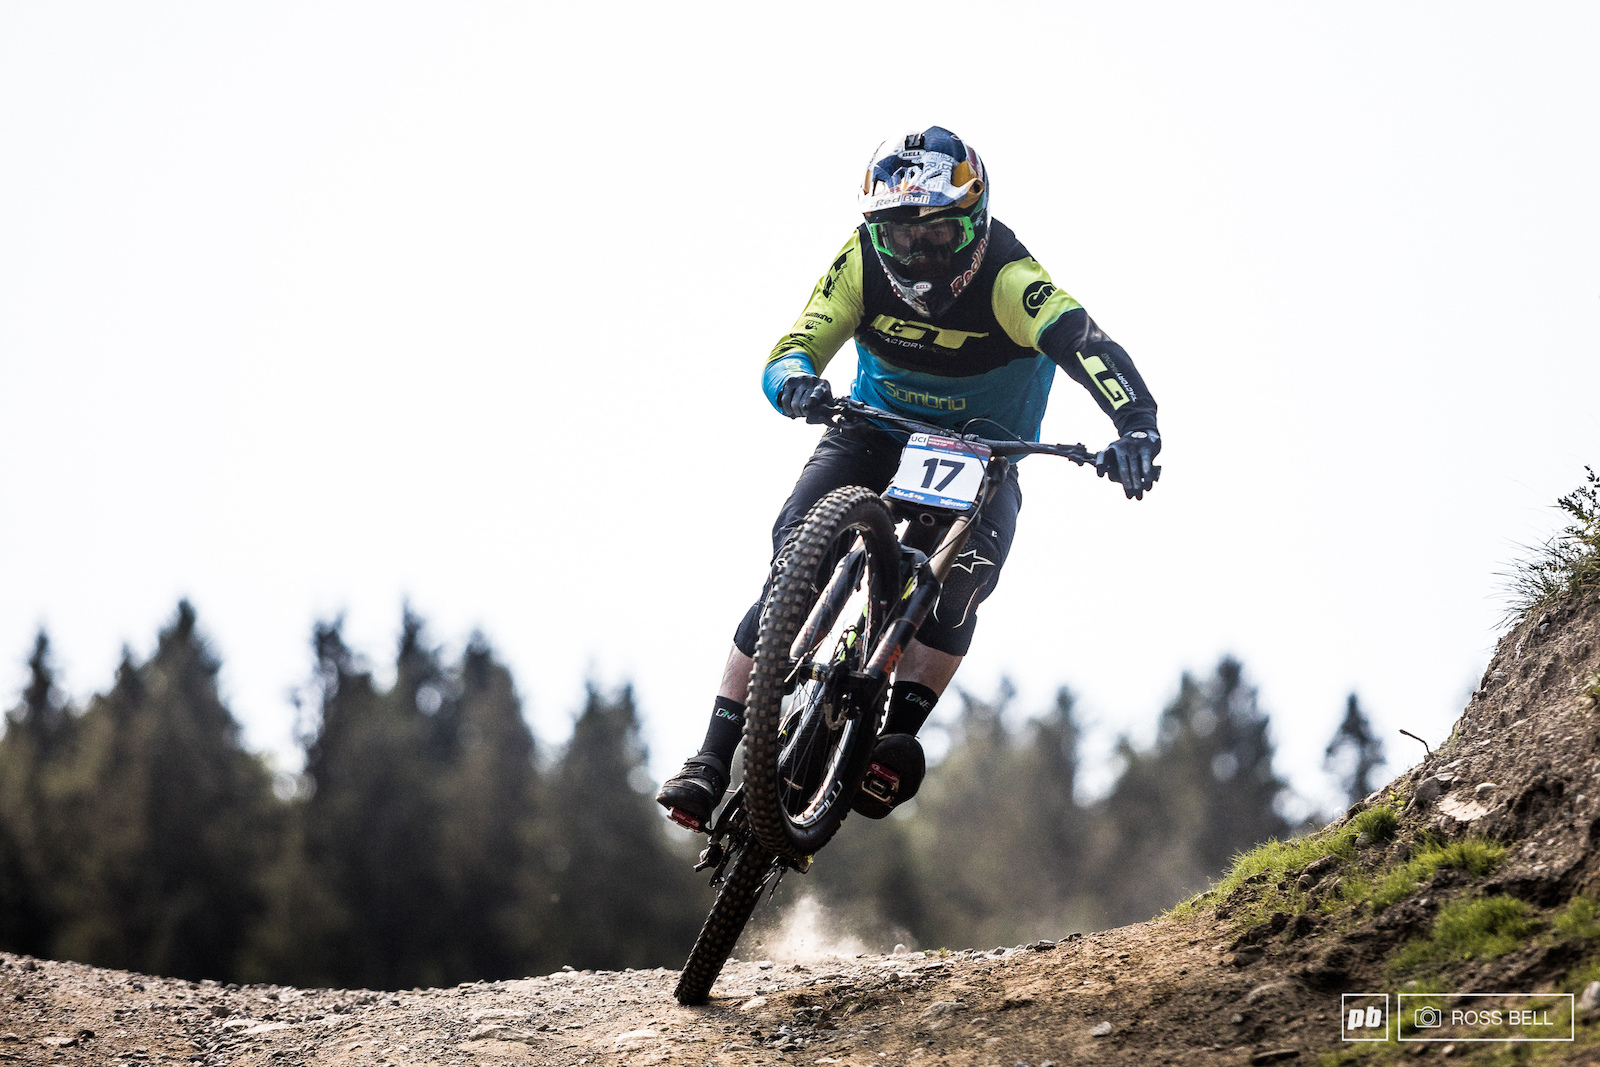 Brook Macdonald attacking the Val di Sole steeps is an eye opening experience.